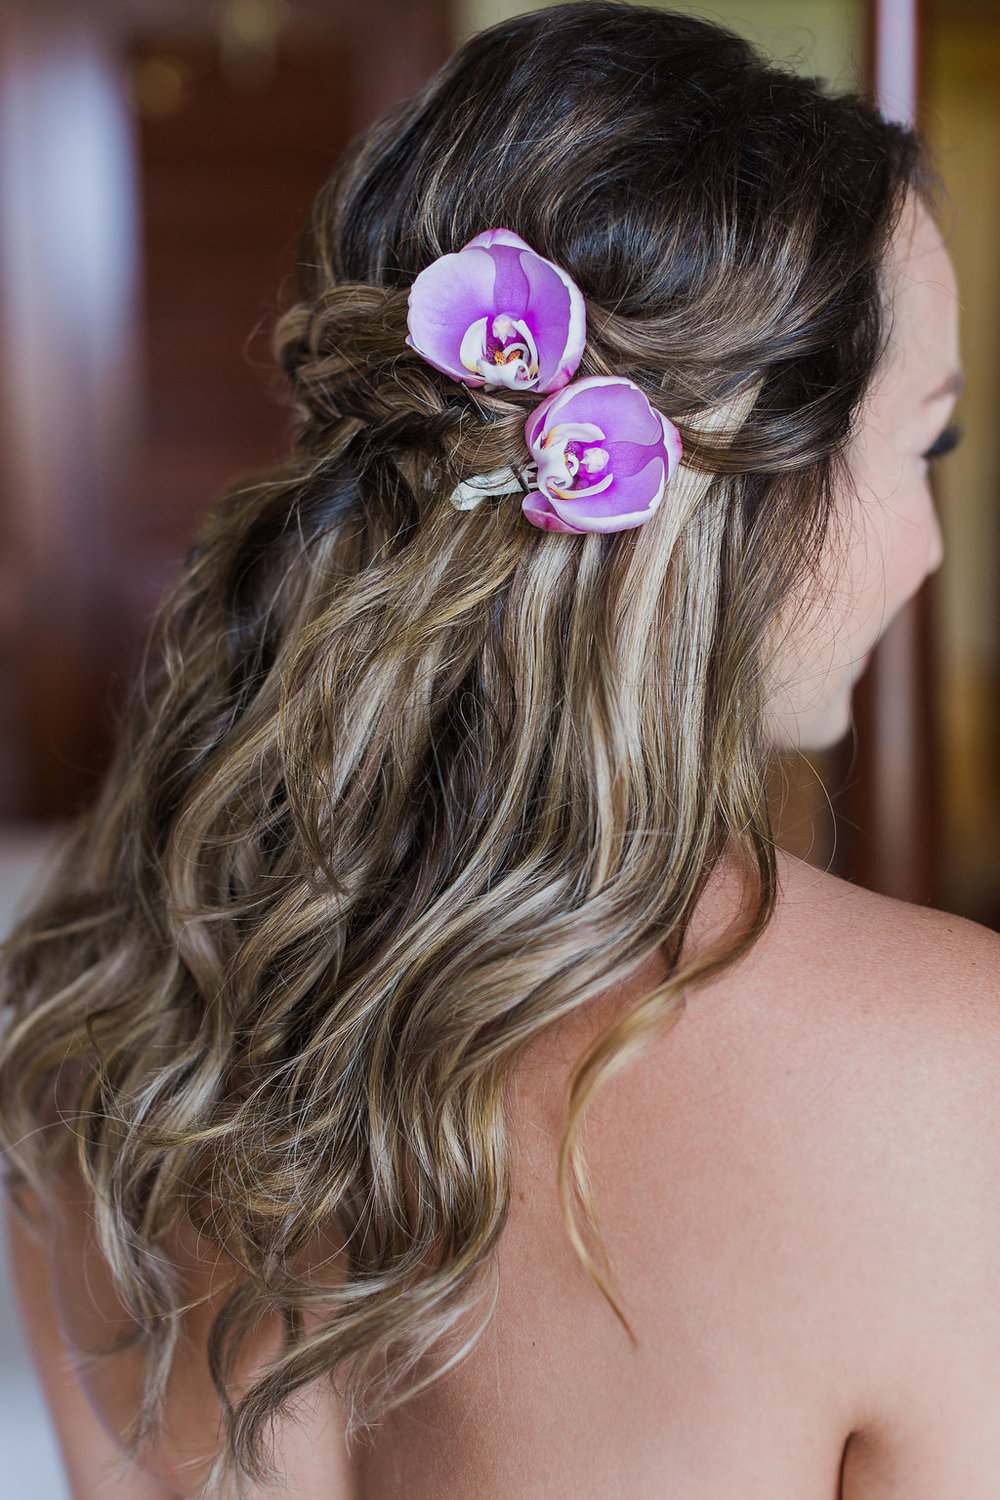 kauai-wedding-flowers-hair.jpg